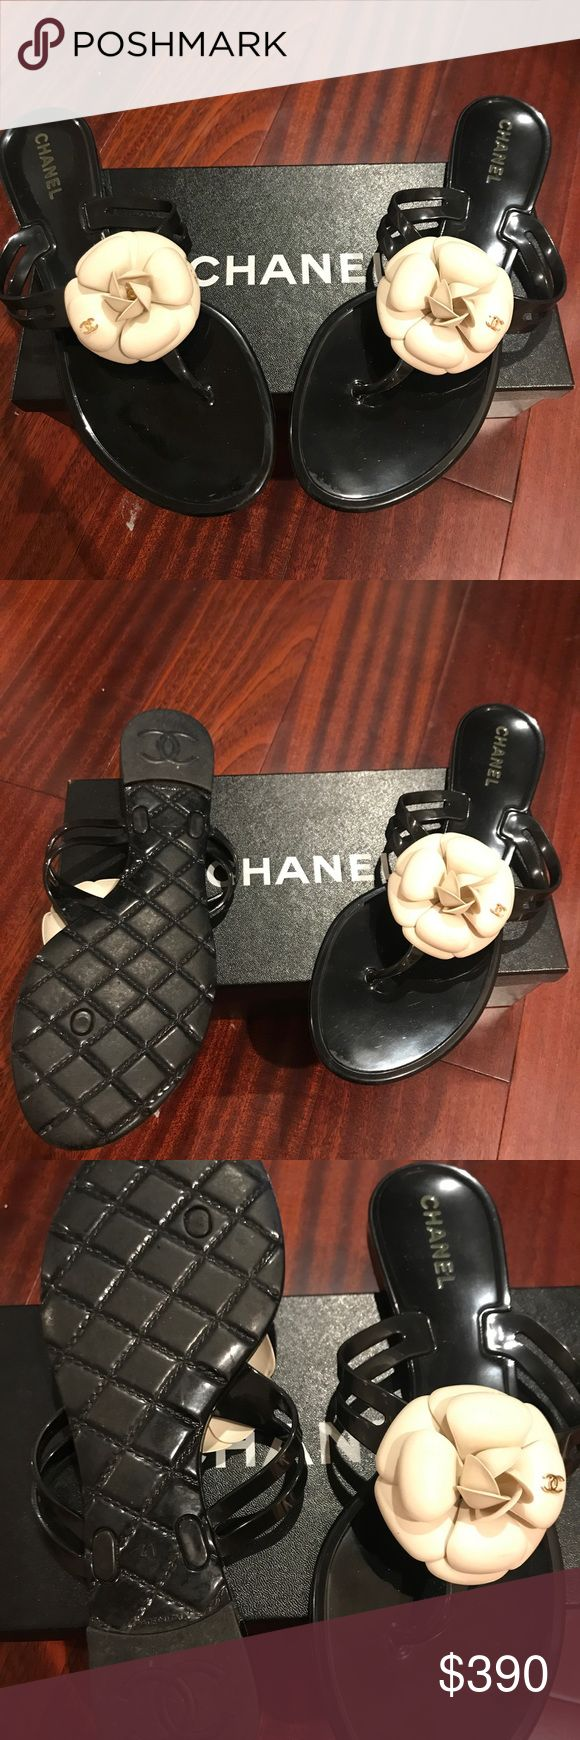 Authentic Chanel camellia jelly sandals Authentic Chanel camellia jelly sandals in good condition. Size 41. Chanel shoes run half to a full size smaller than US size. CHANEL Shoes Sandals